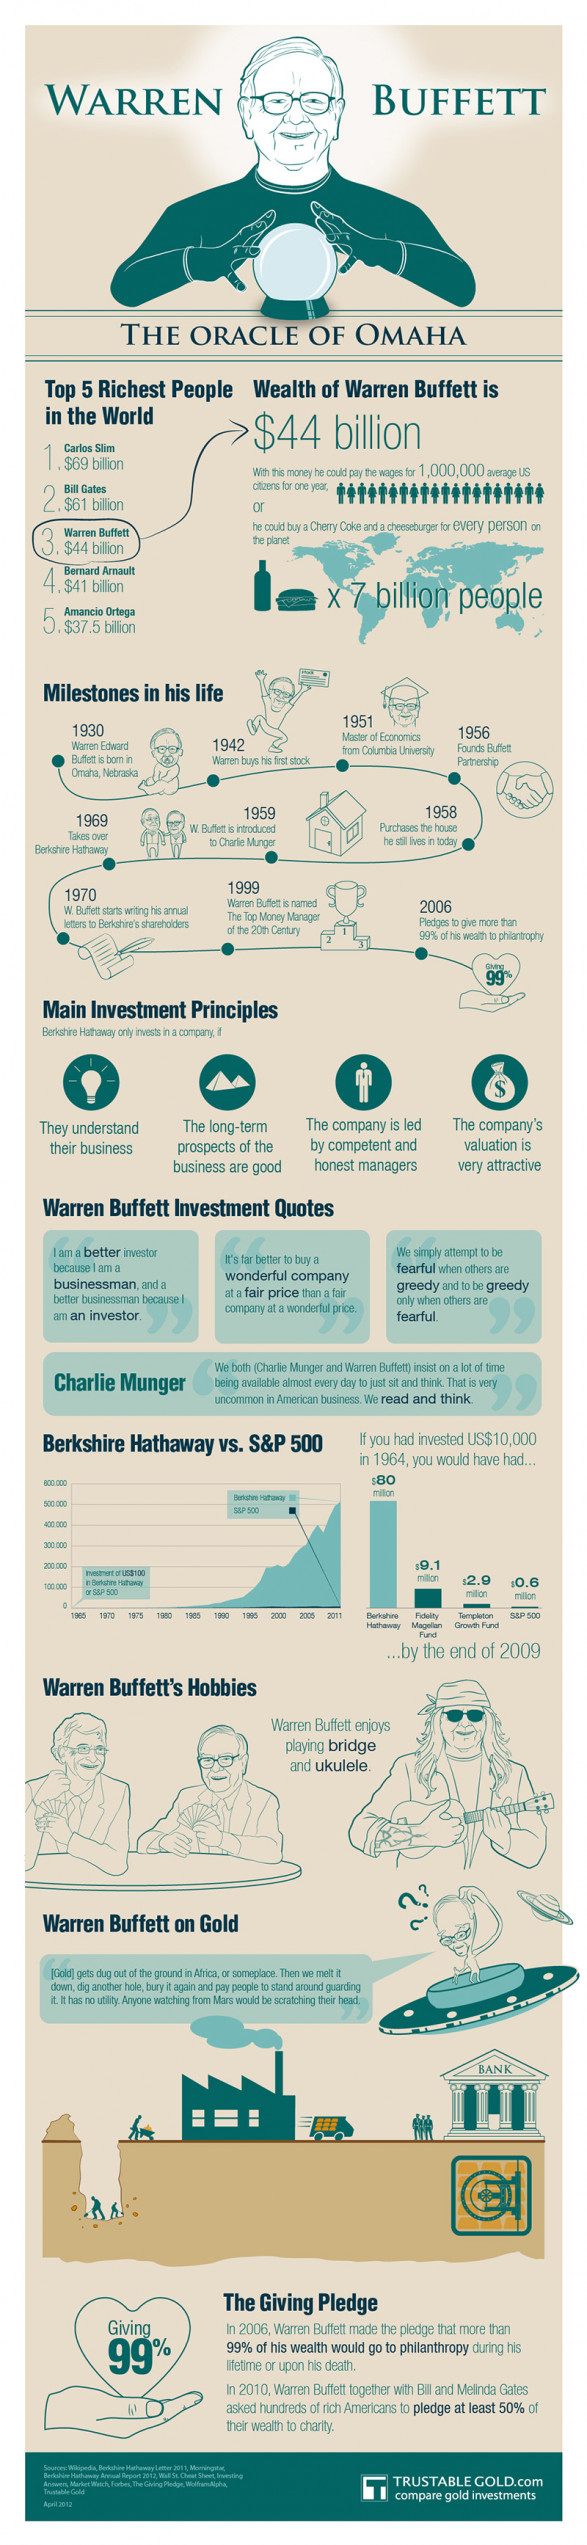 Warren Buffett Infographic